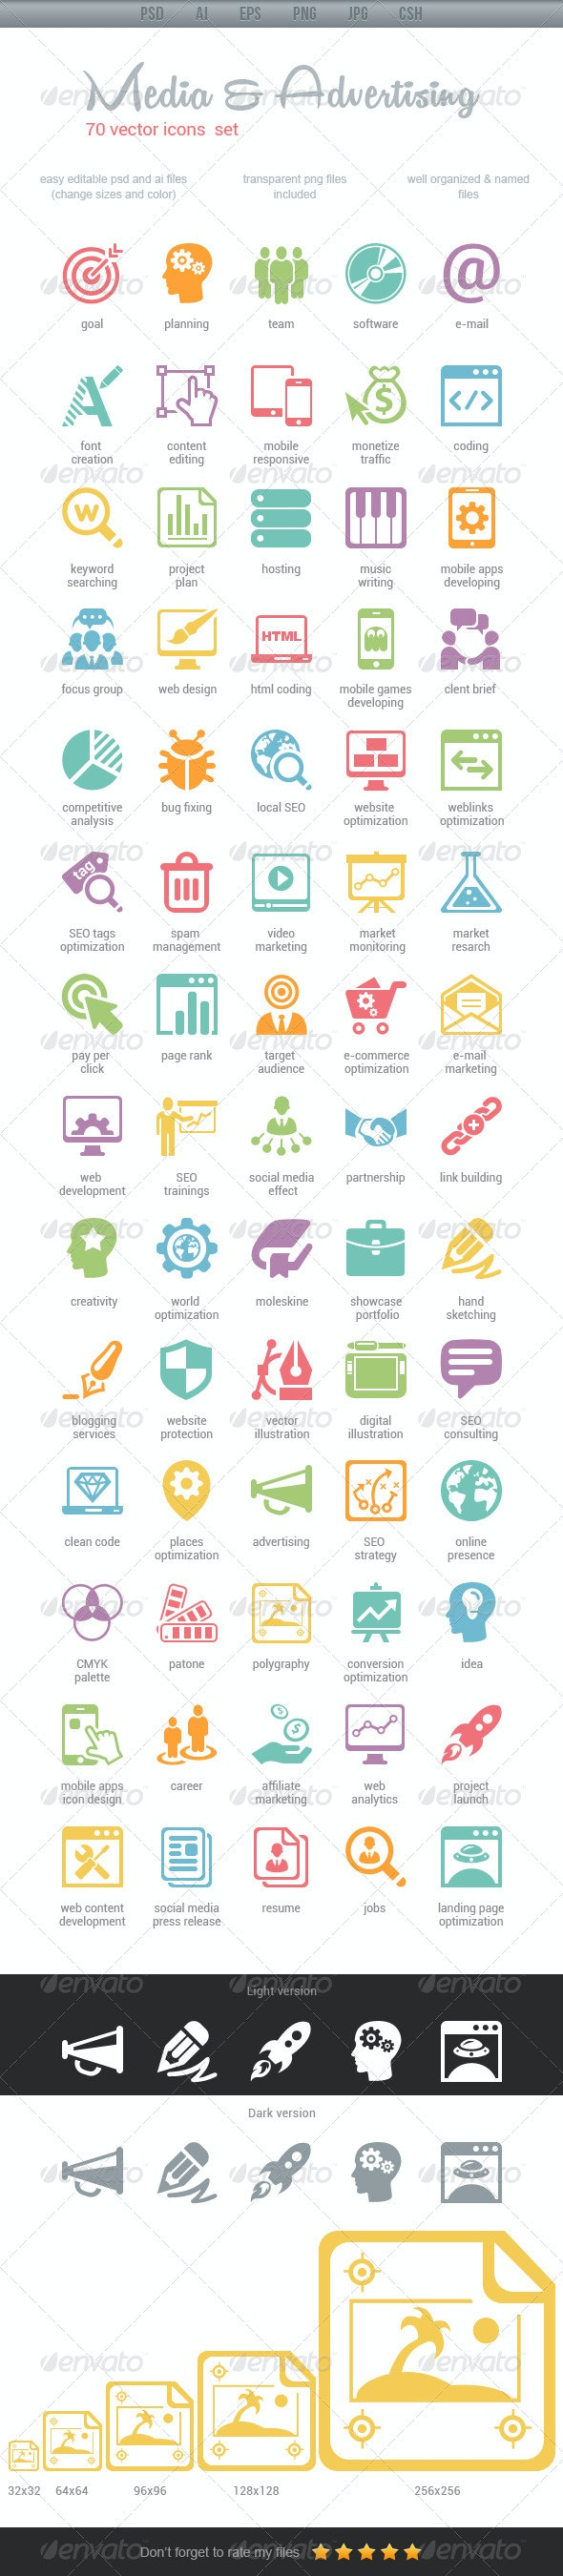 Media & Advertising Icons - Web Icons